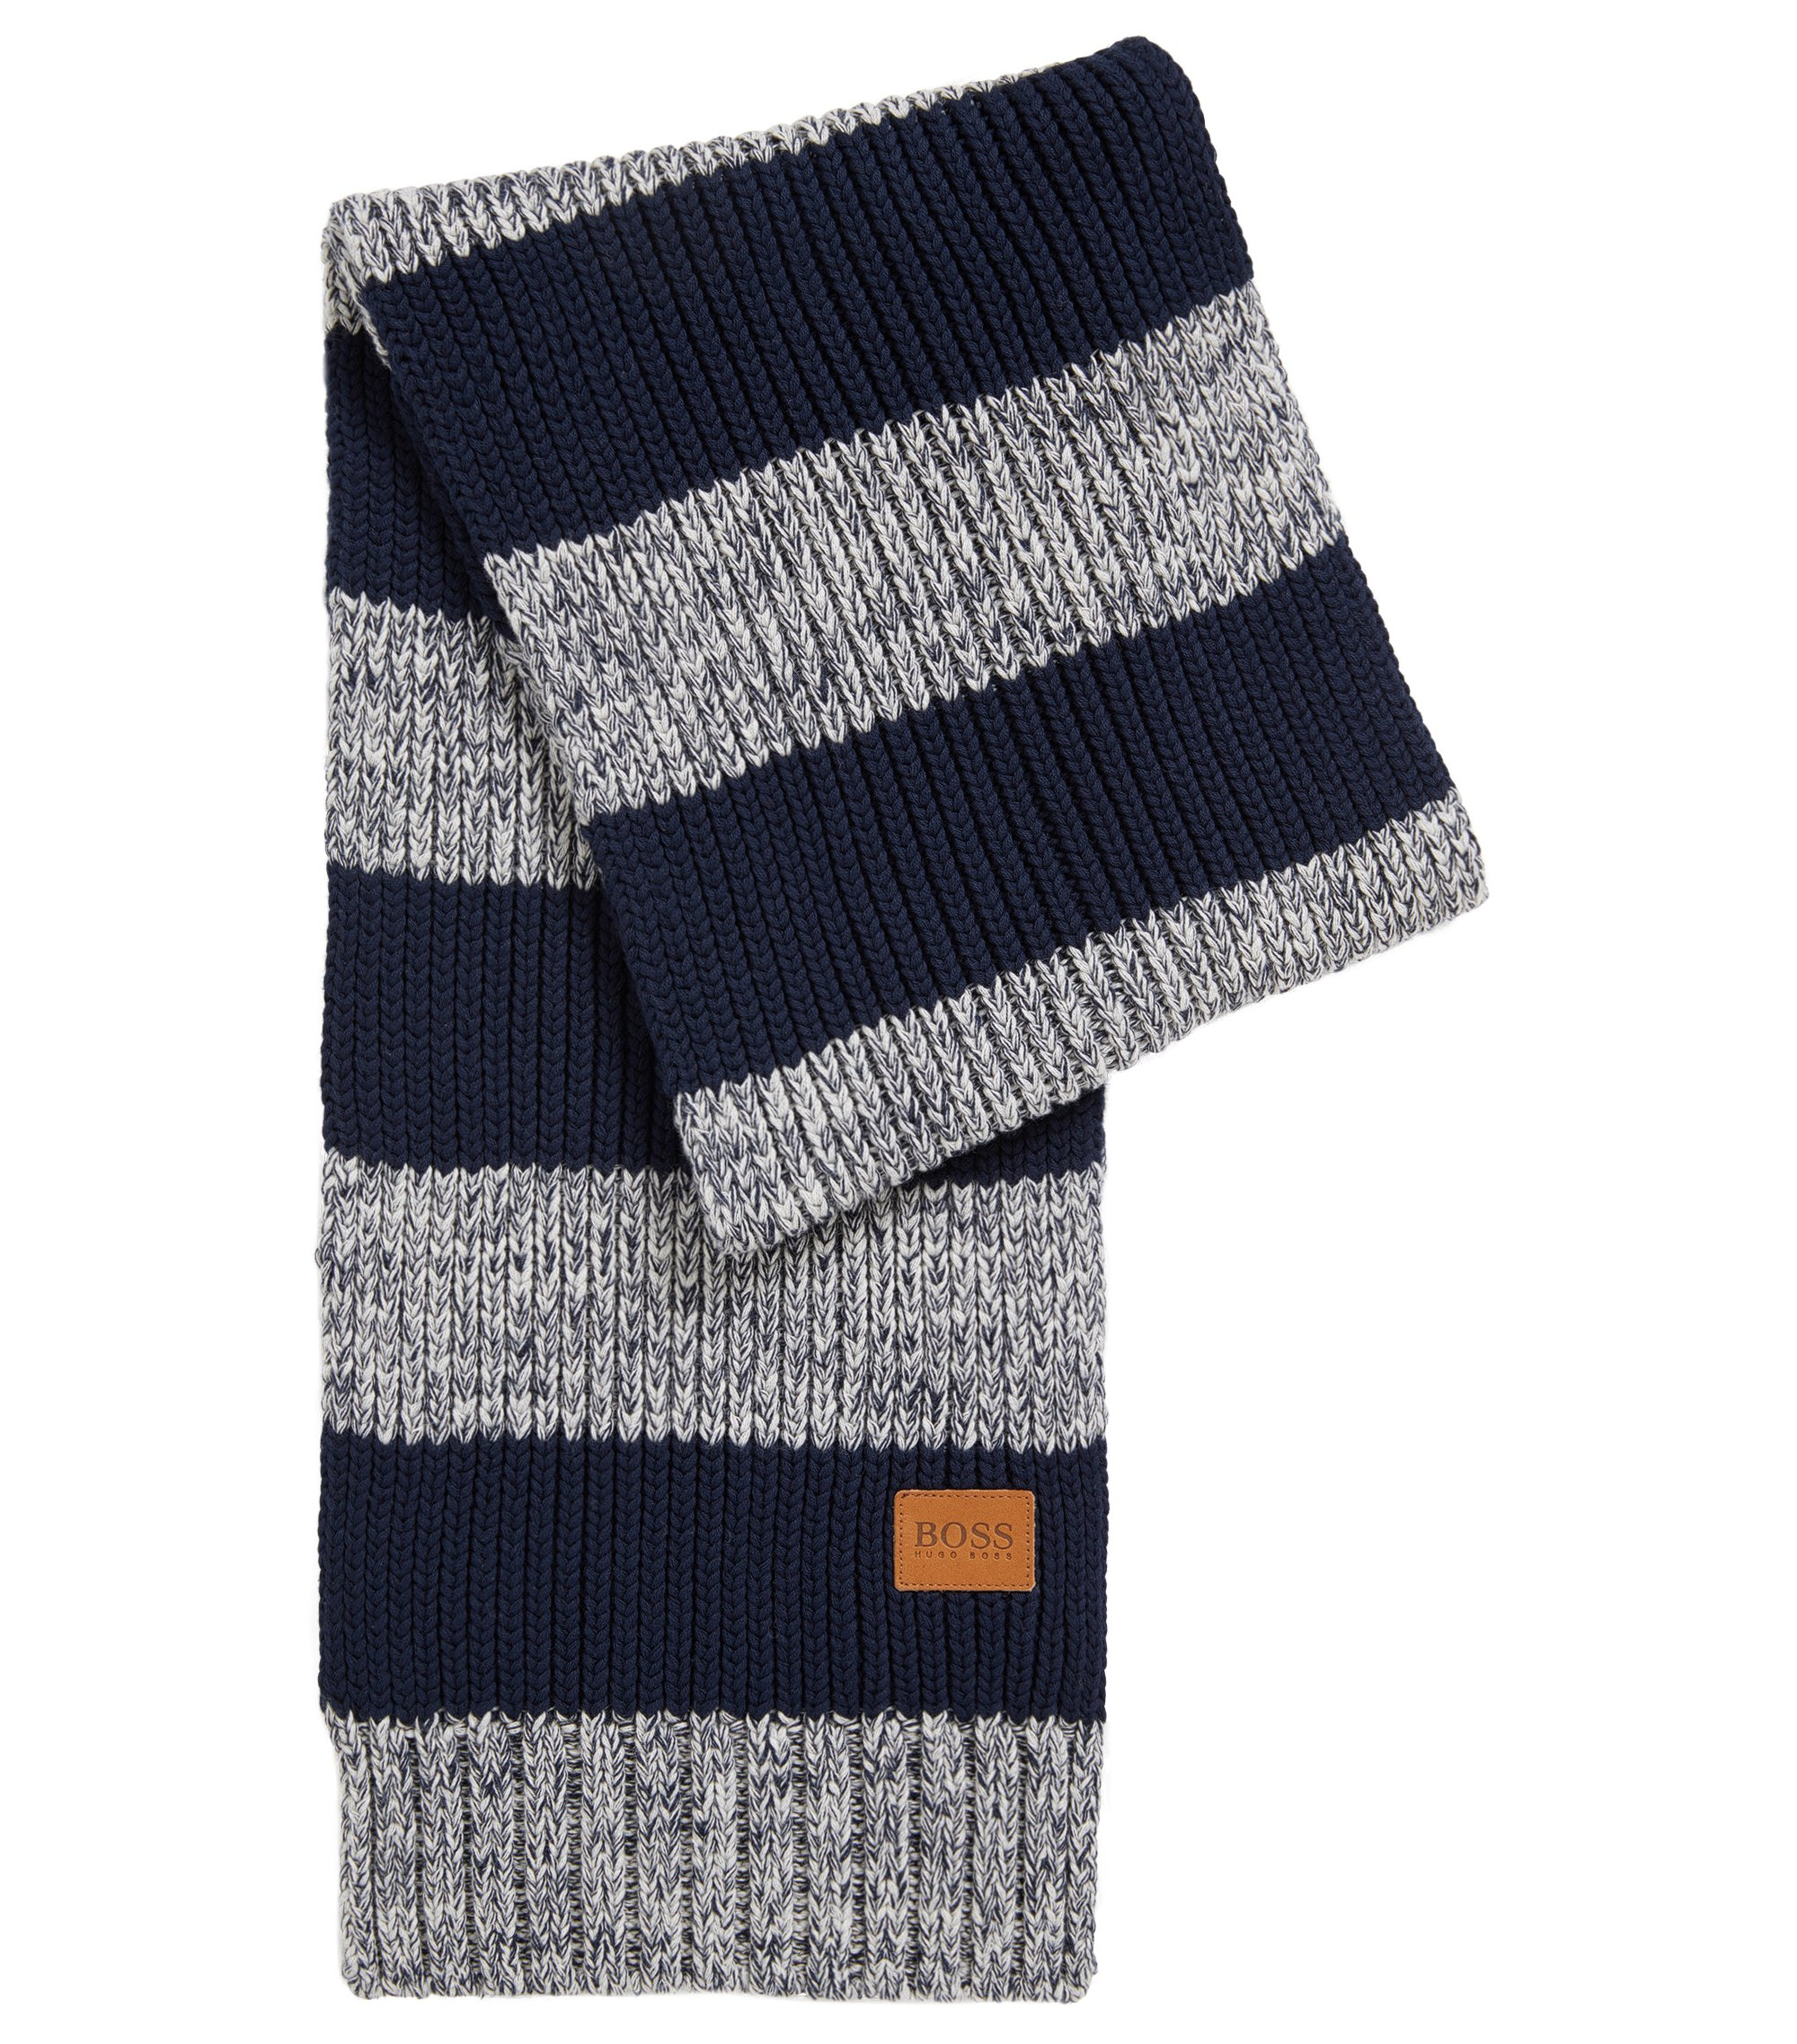 Kids' striped scarf in knitted cotton , Patterned